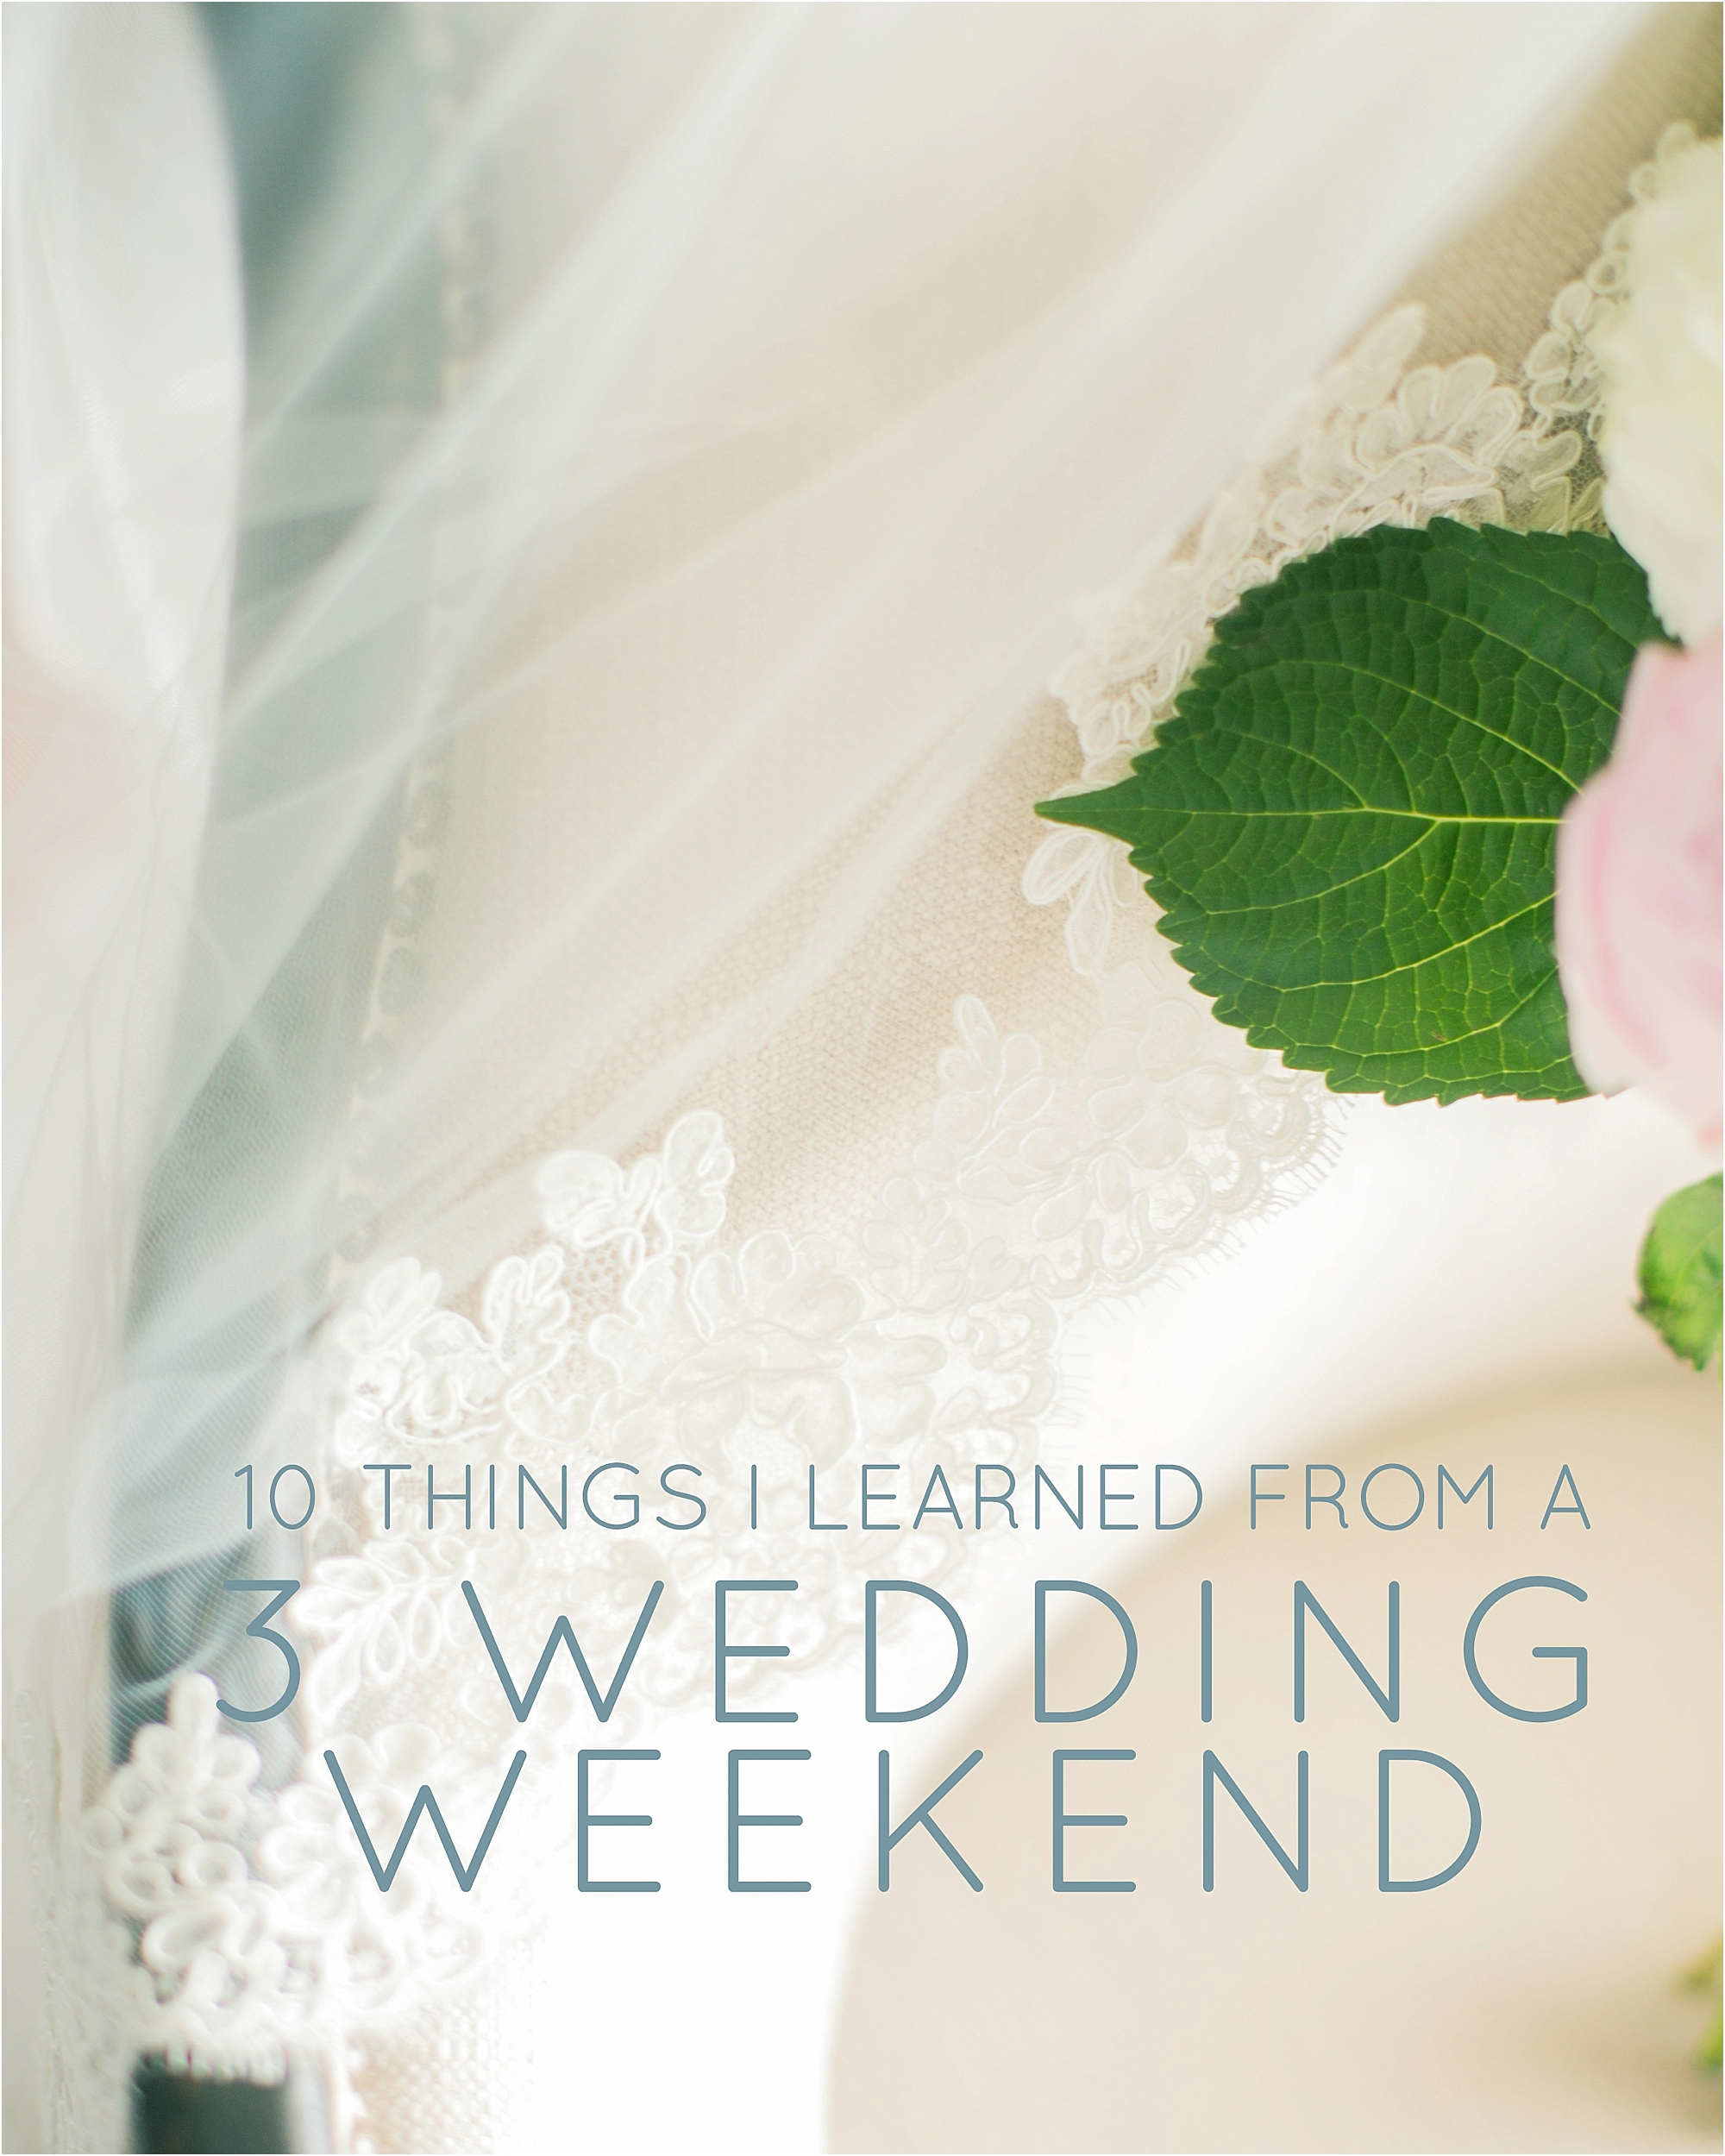 10 Things I Learned from a 3 Wedding Weekend - The Jordan Brittley Blog